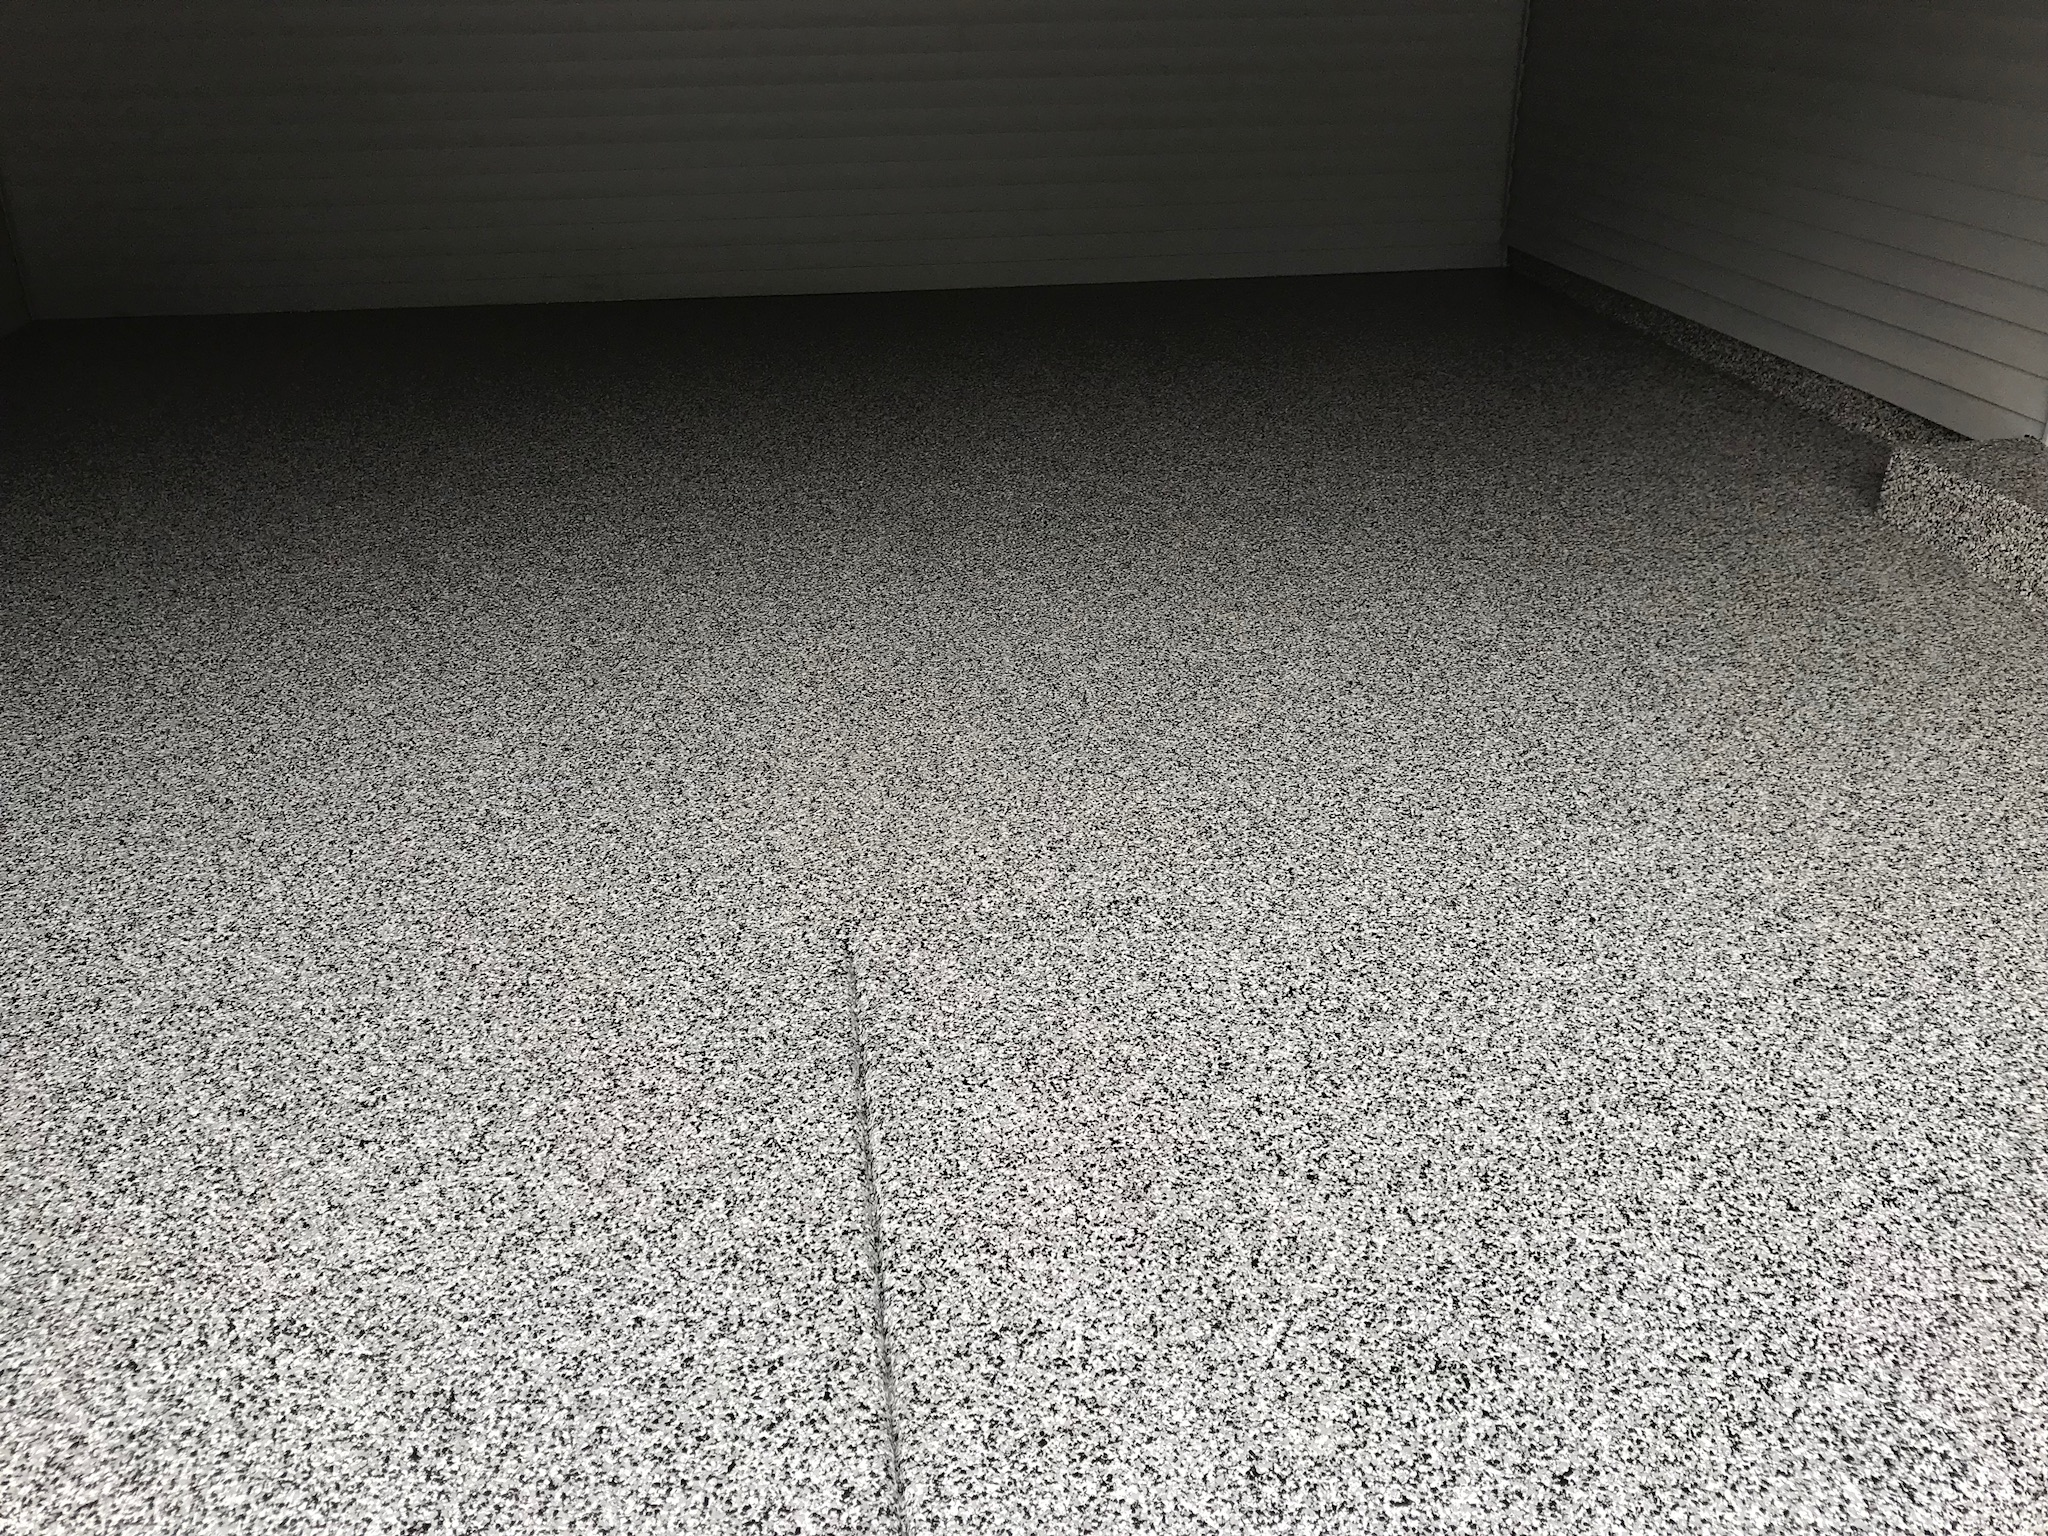 Damaged Garage Floor Repaired In Apple Valley Ccs Mn